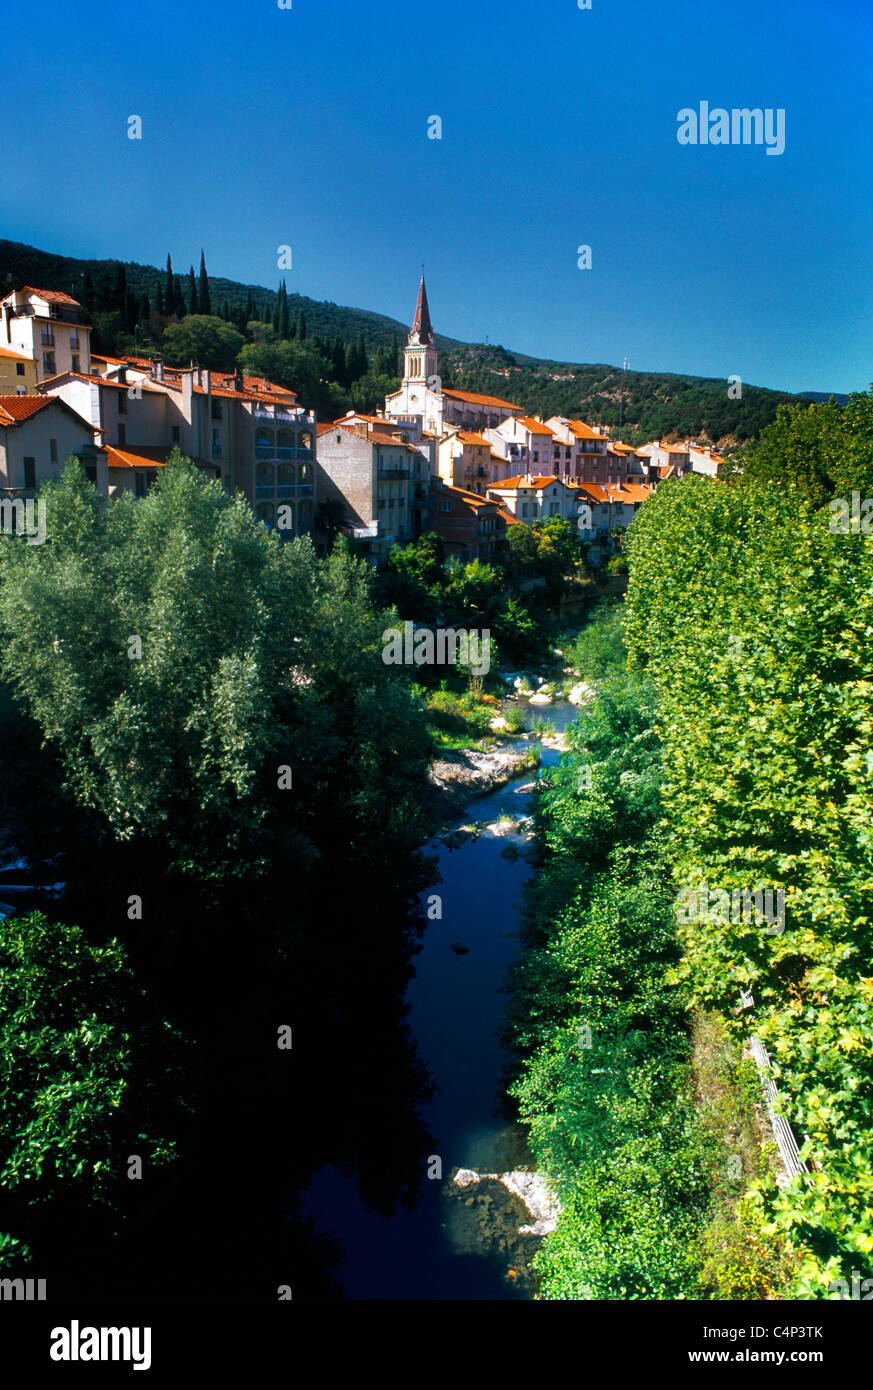 amelie les bains palalda france languedoc roussillon view of town and stock photo royalty free. Black Bedroom Furniture Sets. Home Design Ideas